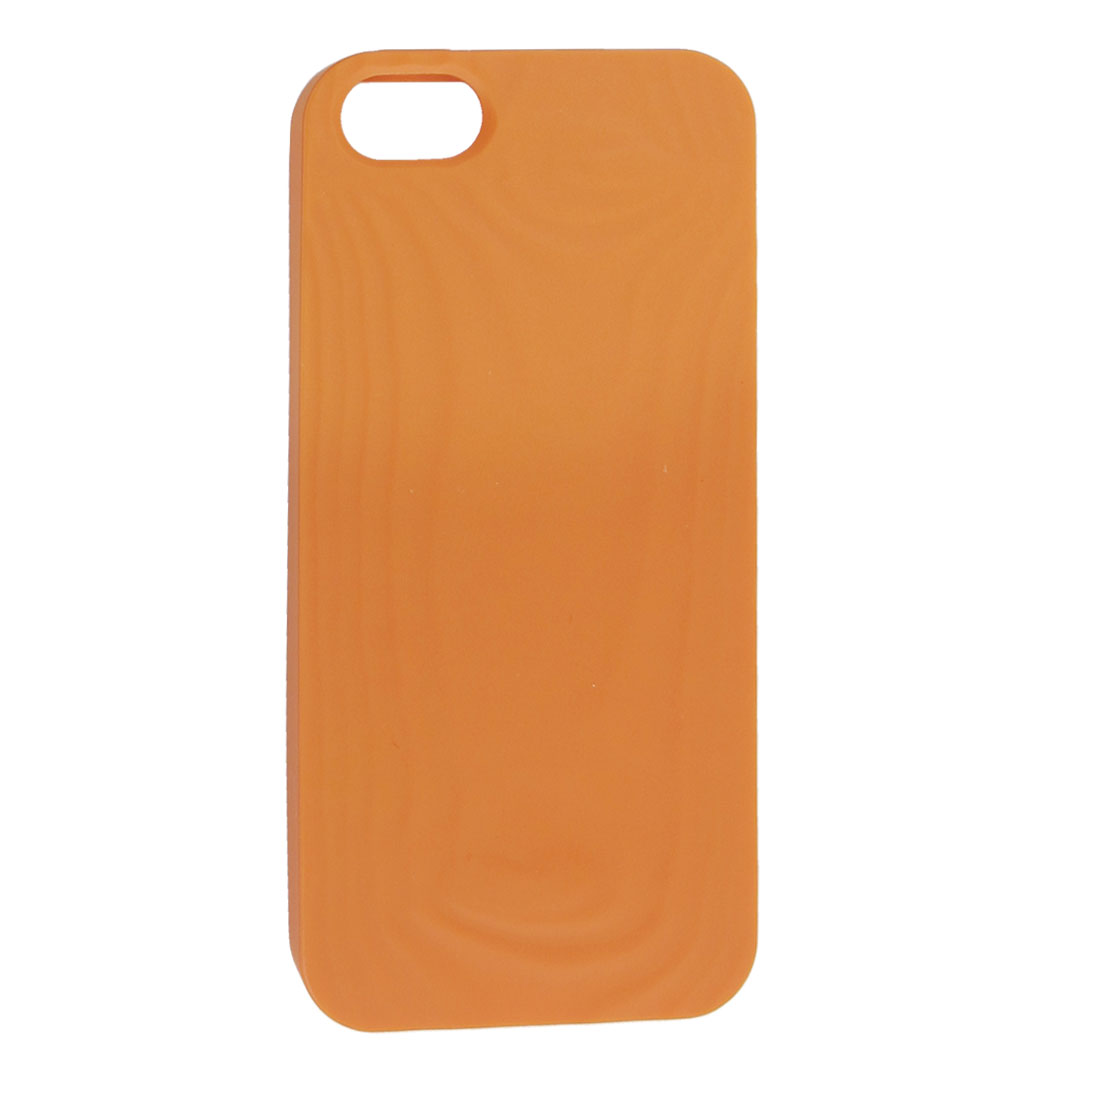 Orange Soft Plastic Embossed Protective Back Case Guard Housing for iPhone 5 5G